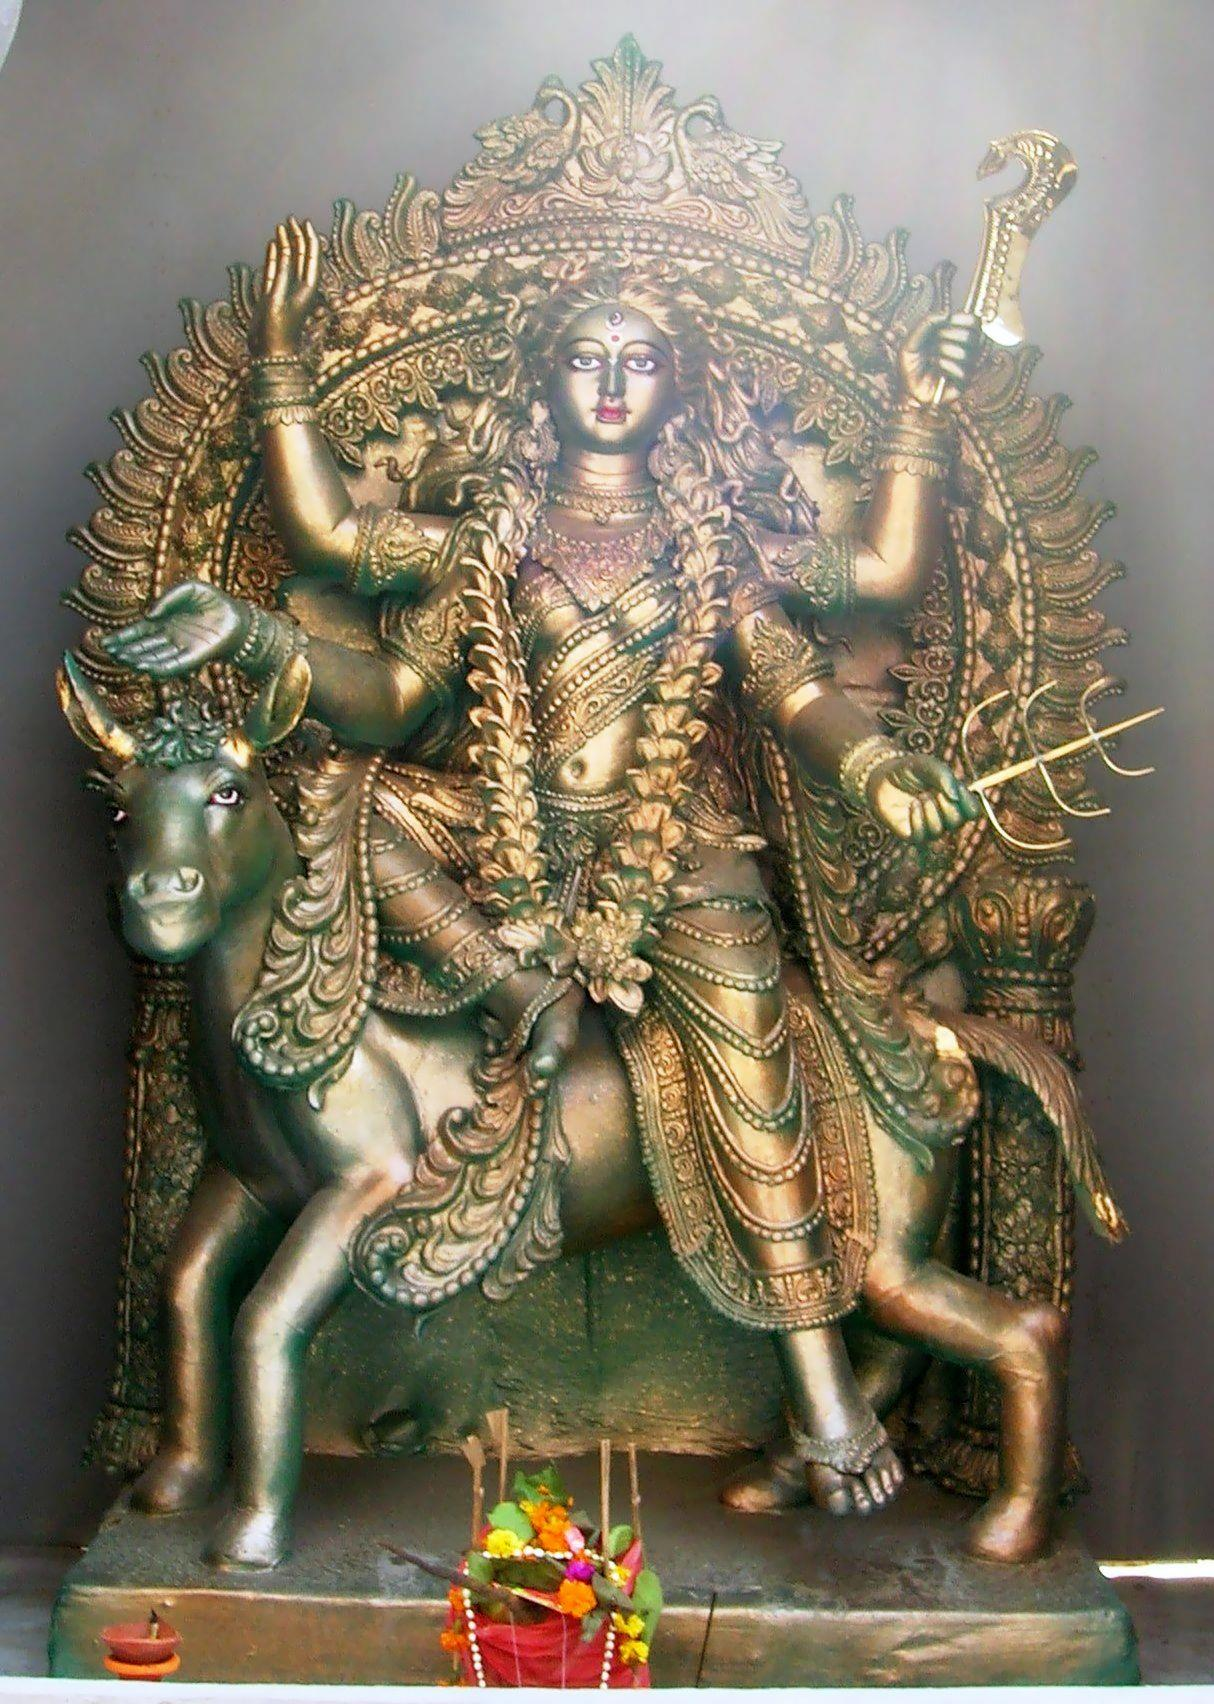 Cute Wallpapers Of Wofe Kaalratri Maa Is Worshiped On Seventh Day Of Navratri